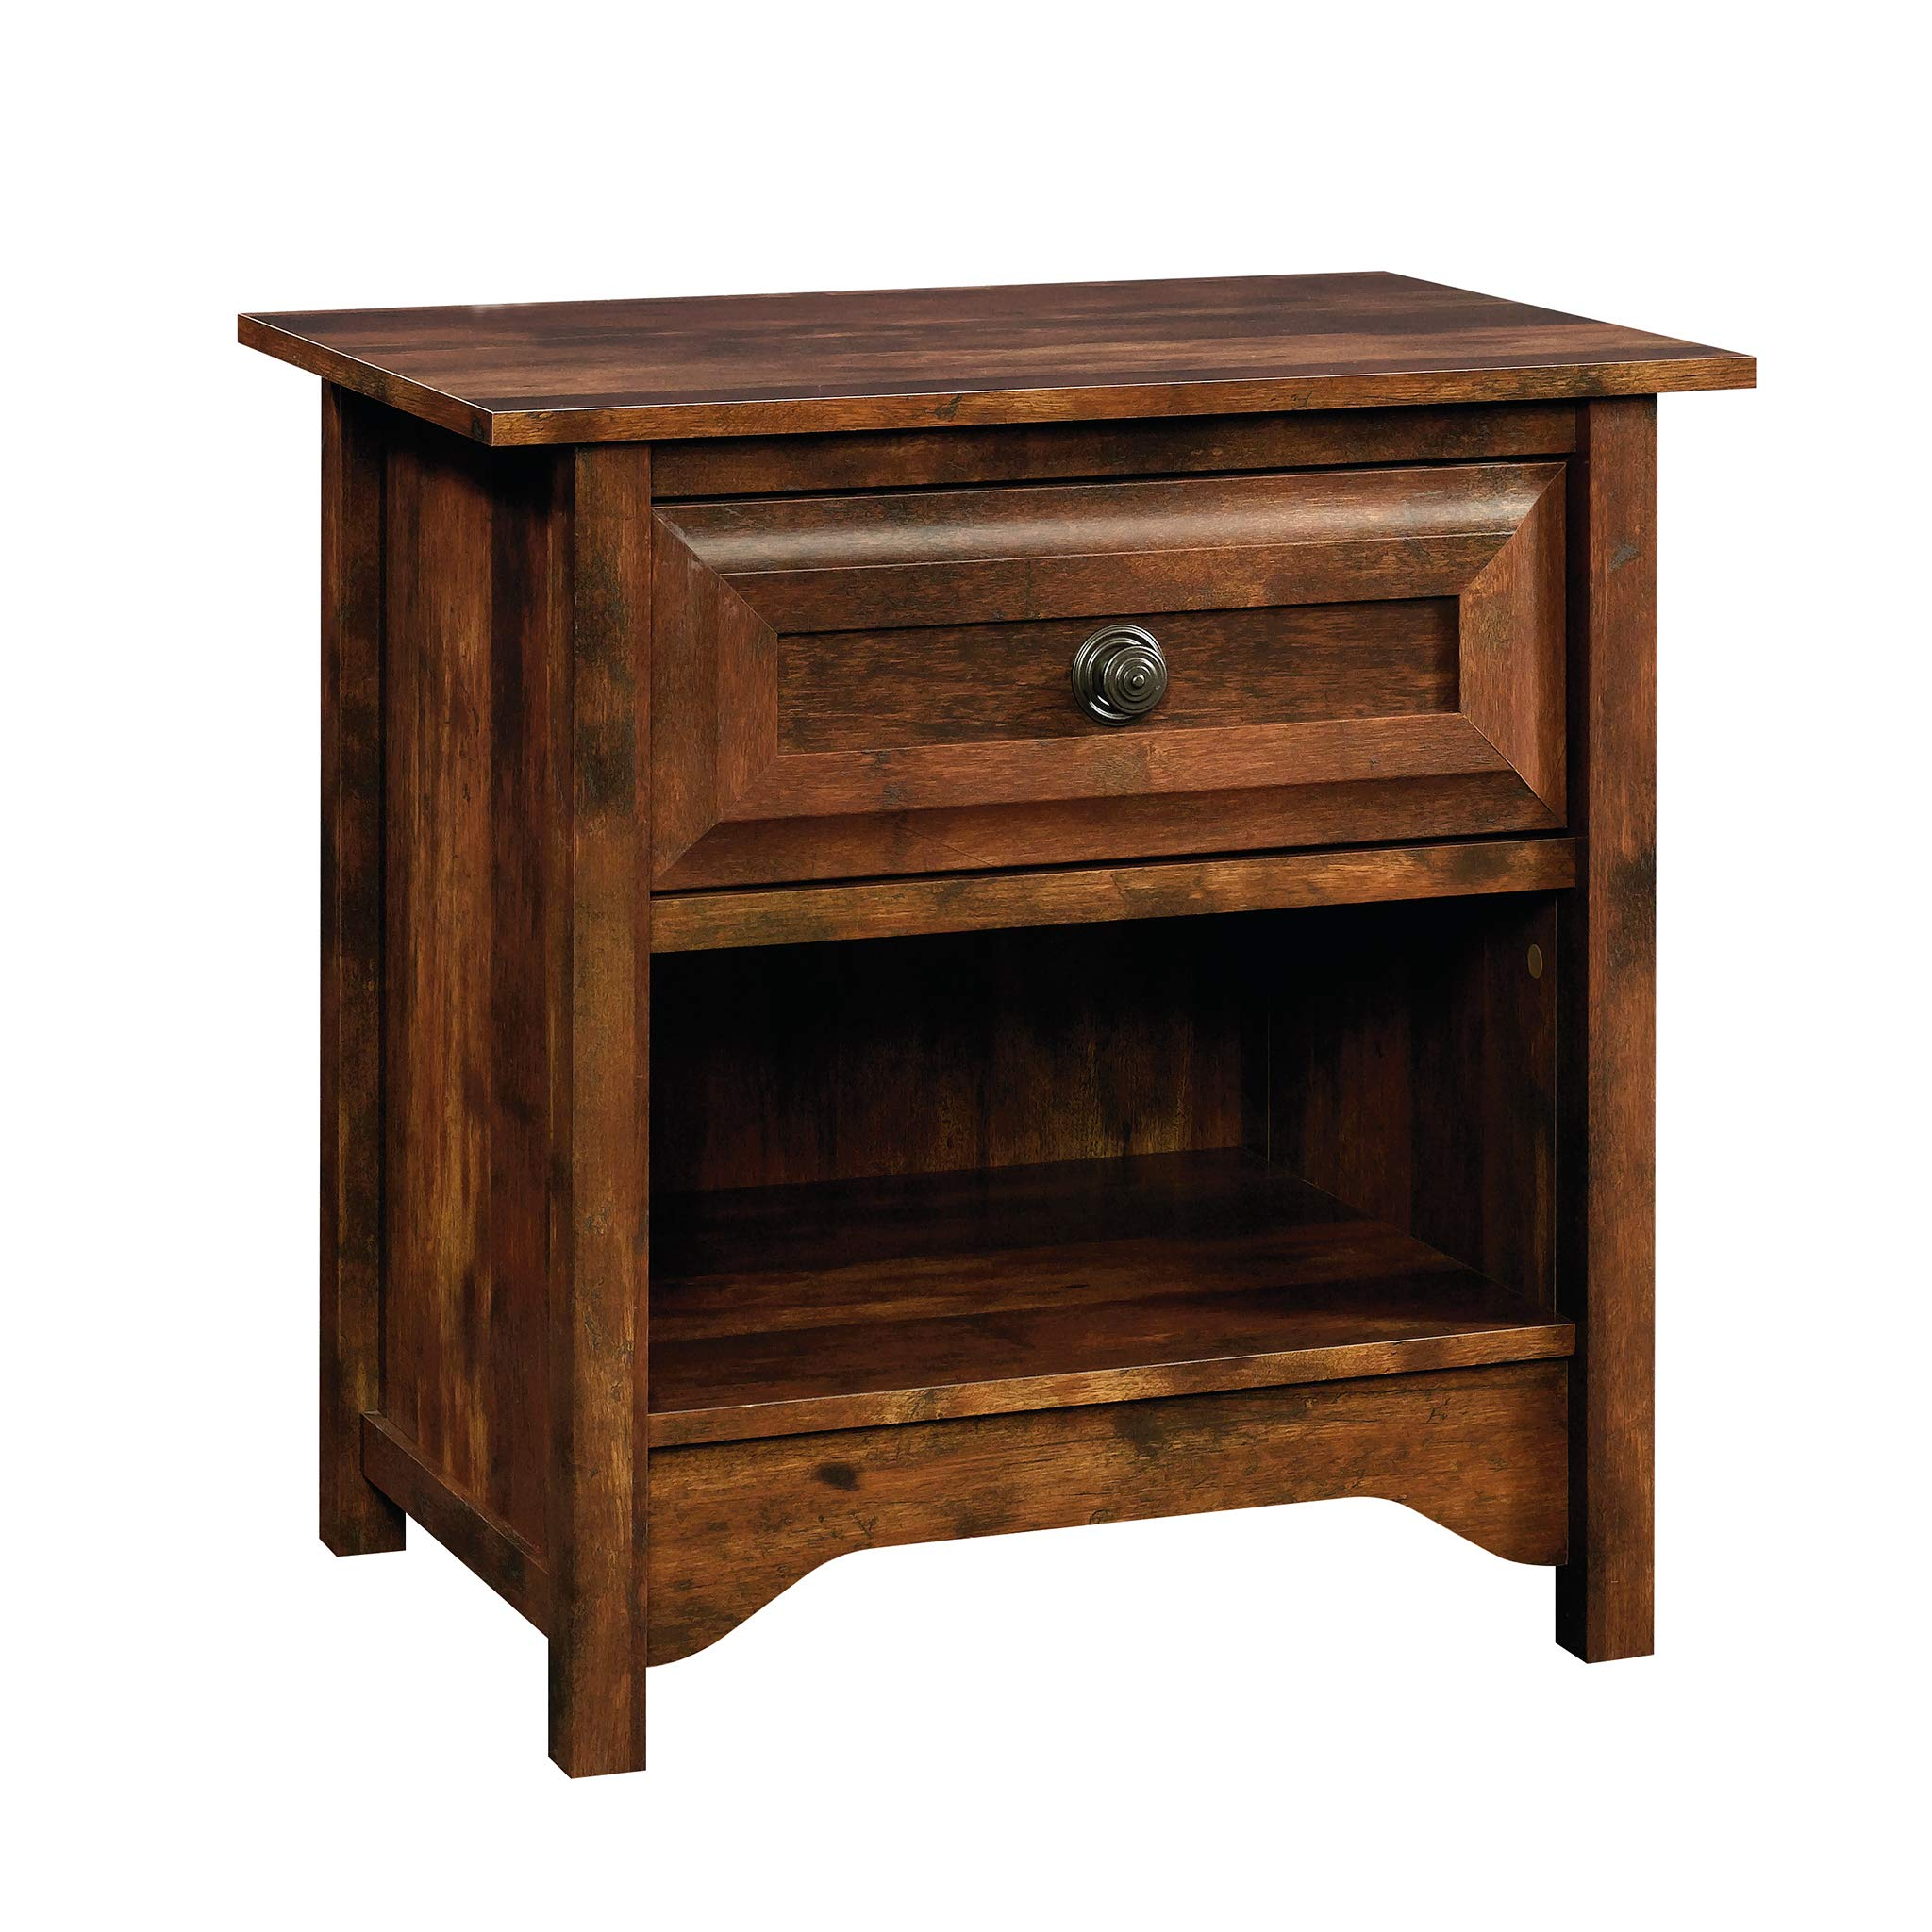 Sauder 420936 Viabella Night Stand Table, L: 26.14'' x W: 18.11'' x H: 25.75'', Curado Cherry finish